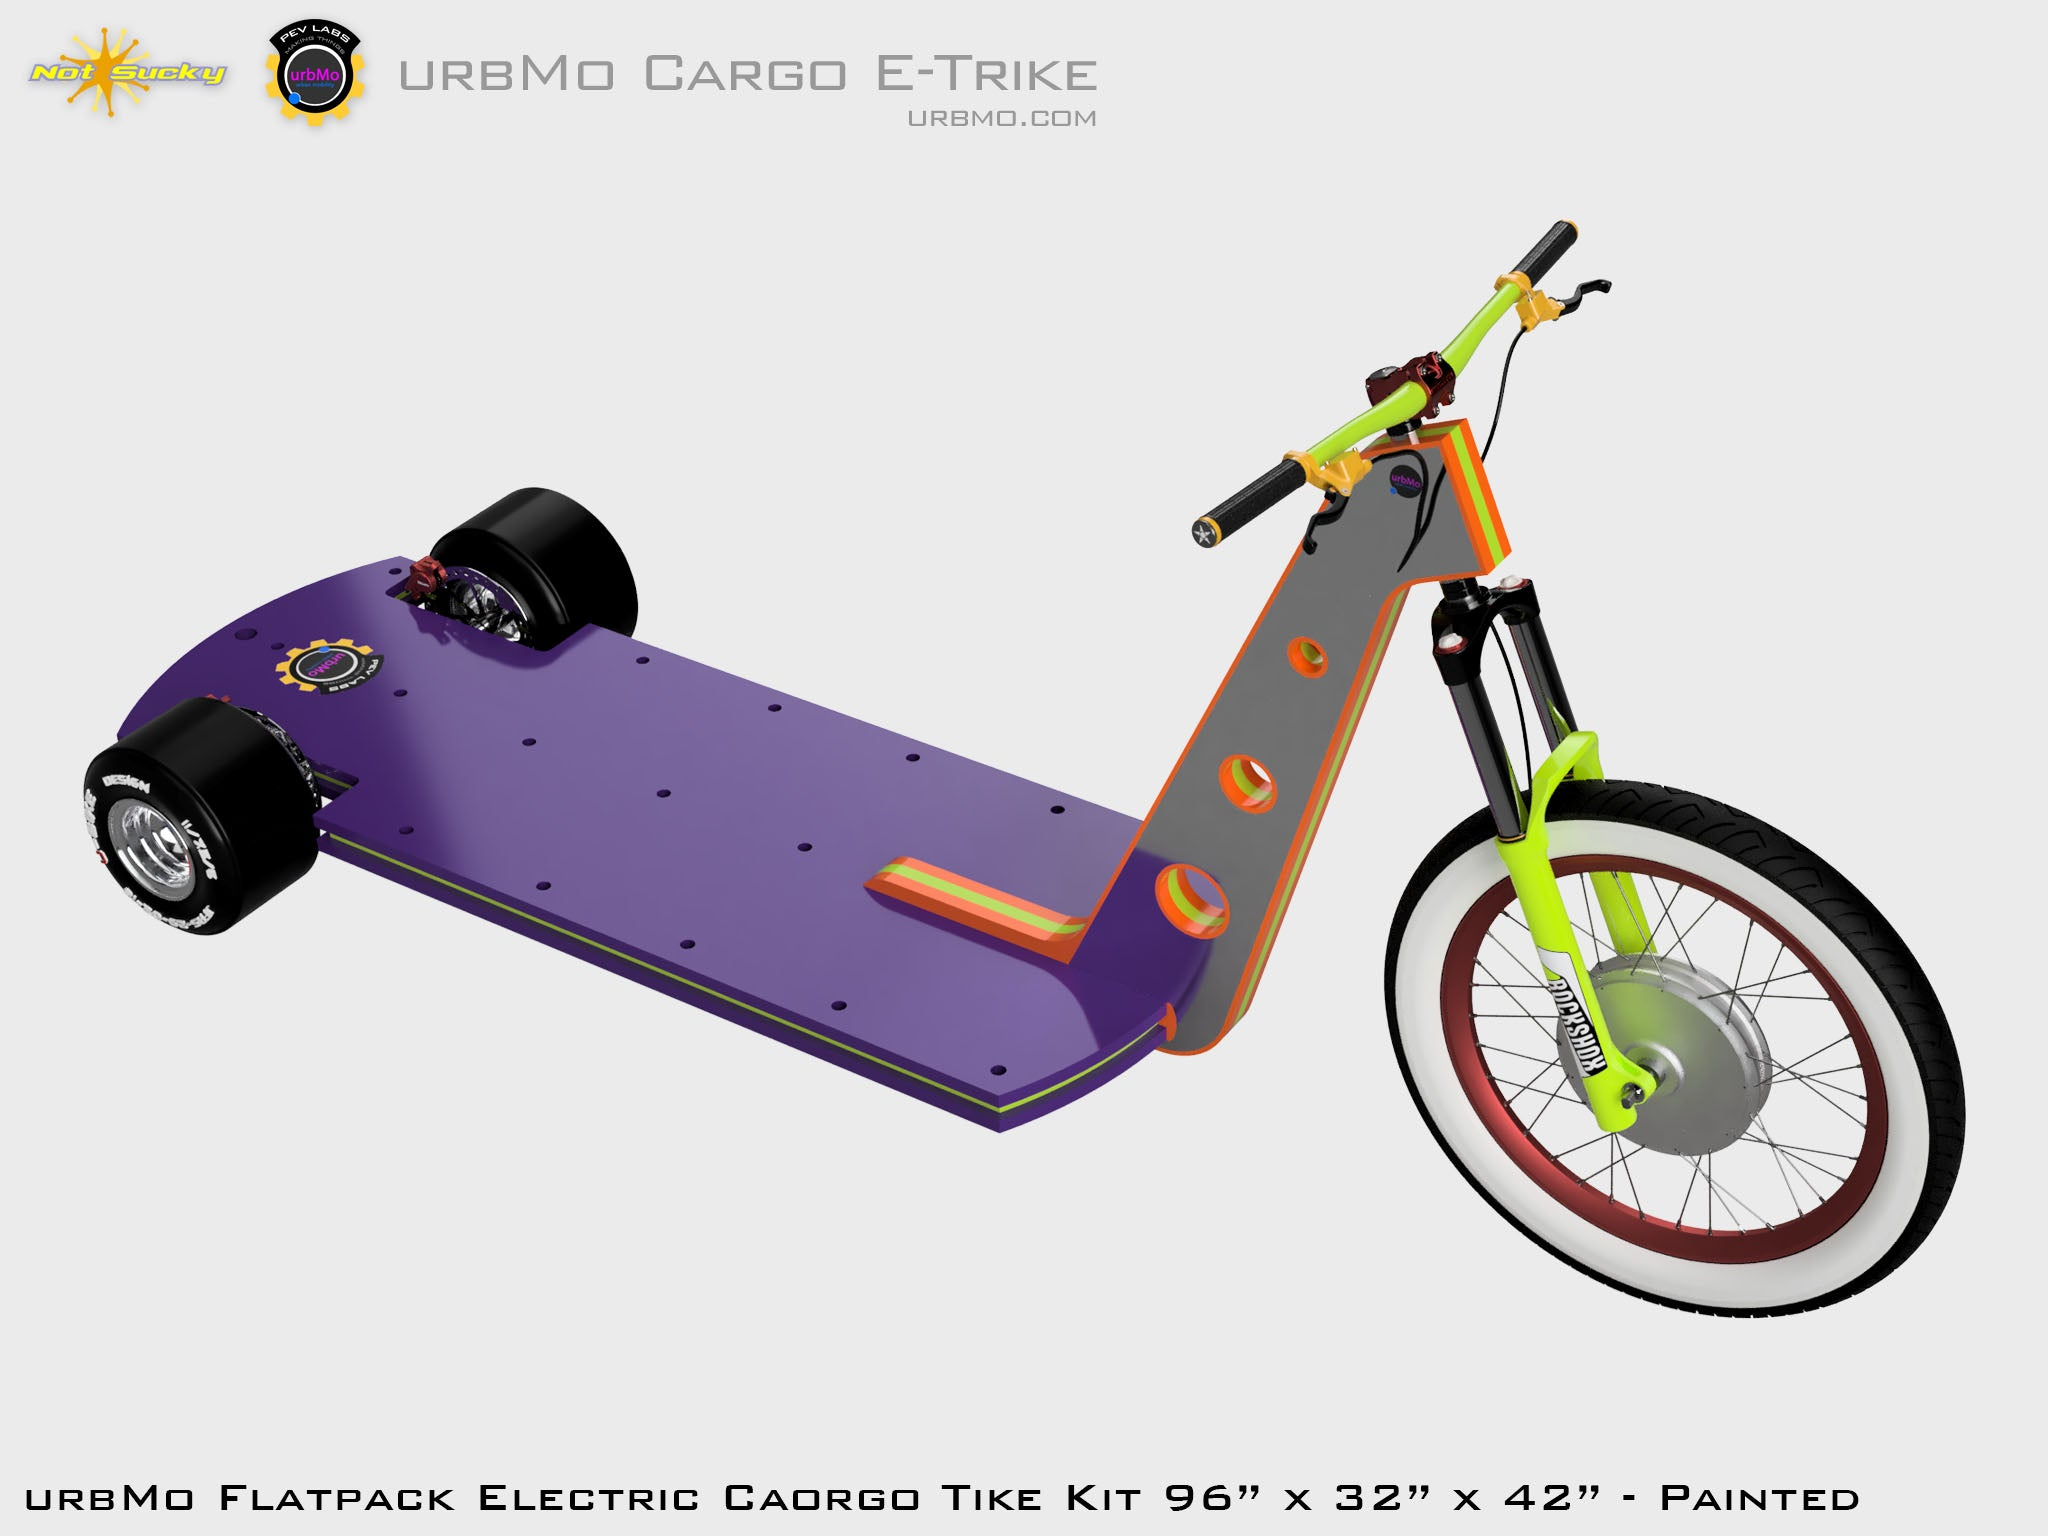 Flat Pack Cargo Scooter Electric Vehicle Kit